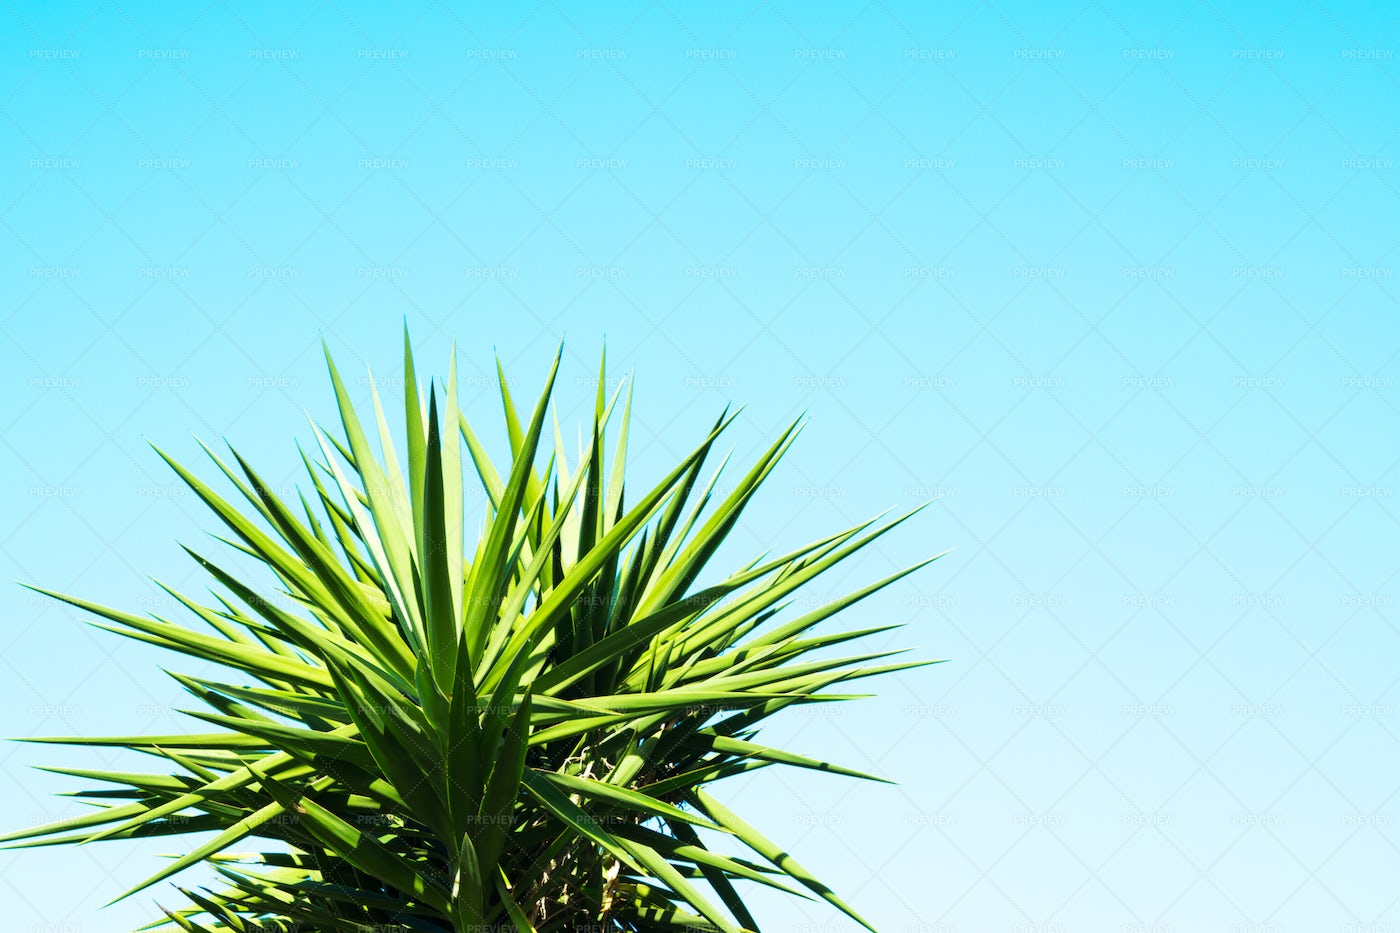 Blue Sky Background With Palm: Stock Photos